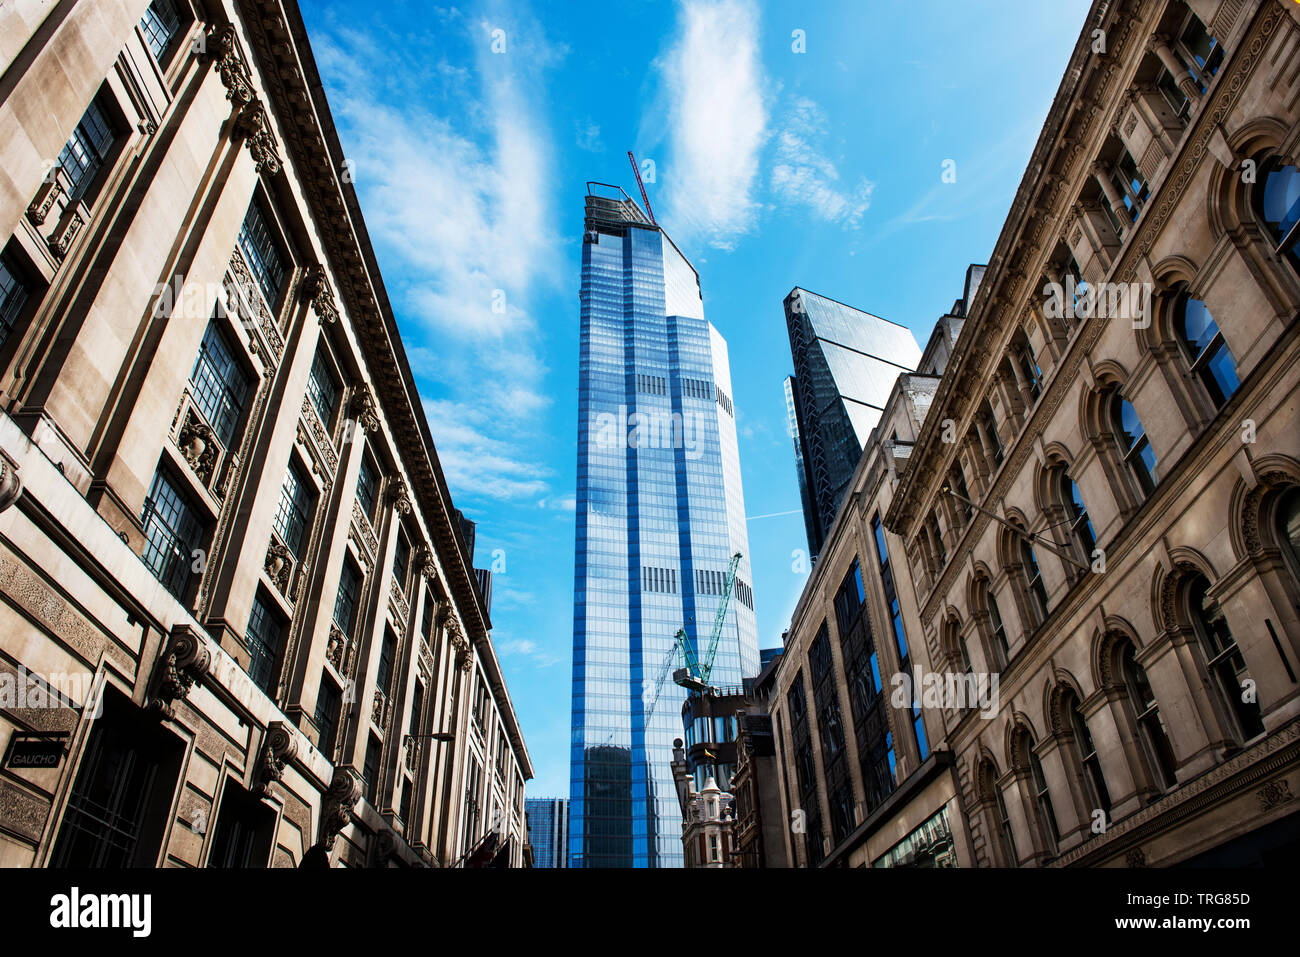 City of London, England UK May 2019. 22 Bishopsgate formerly known as The Pinnacle 22 Bishopsgate is a commercial skyscraper under construction in Lon Stock Photo